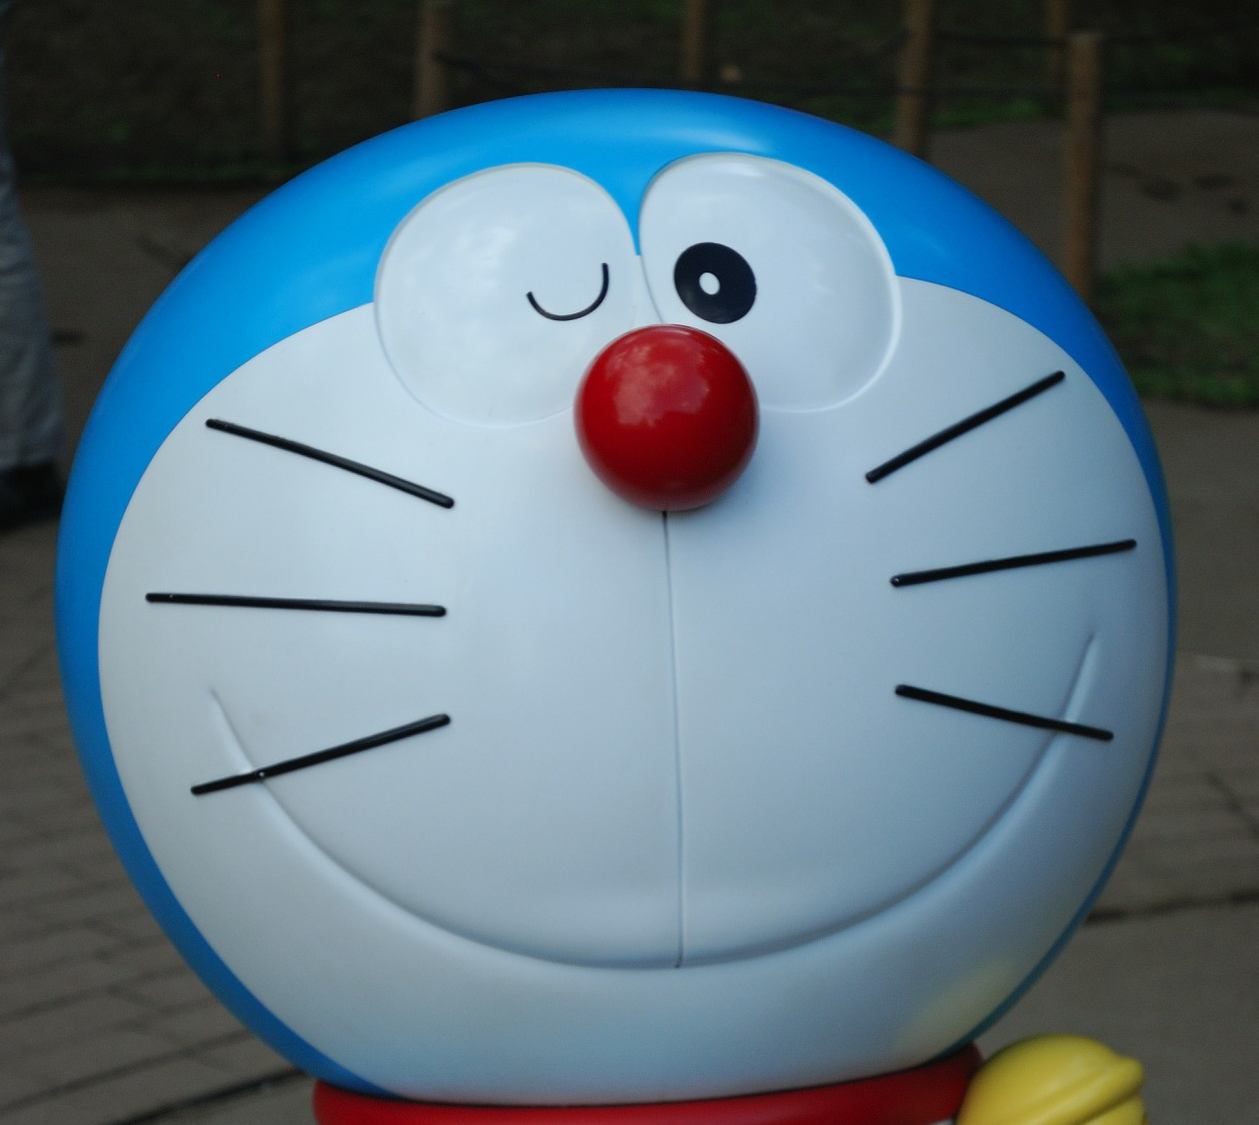 The story of DORAEMON